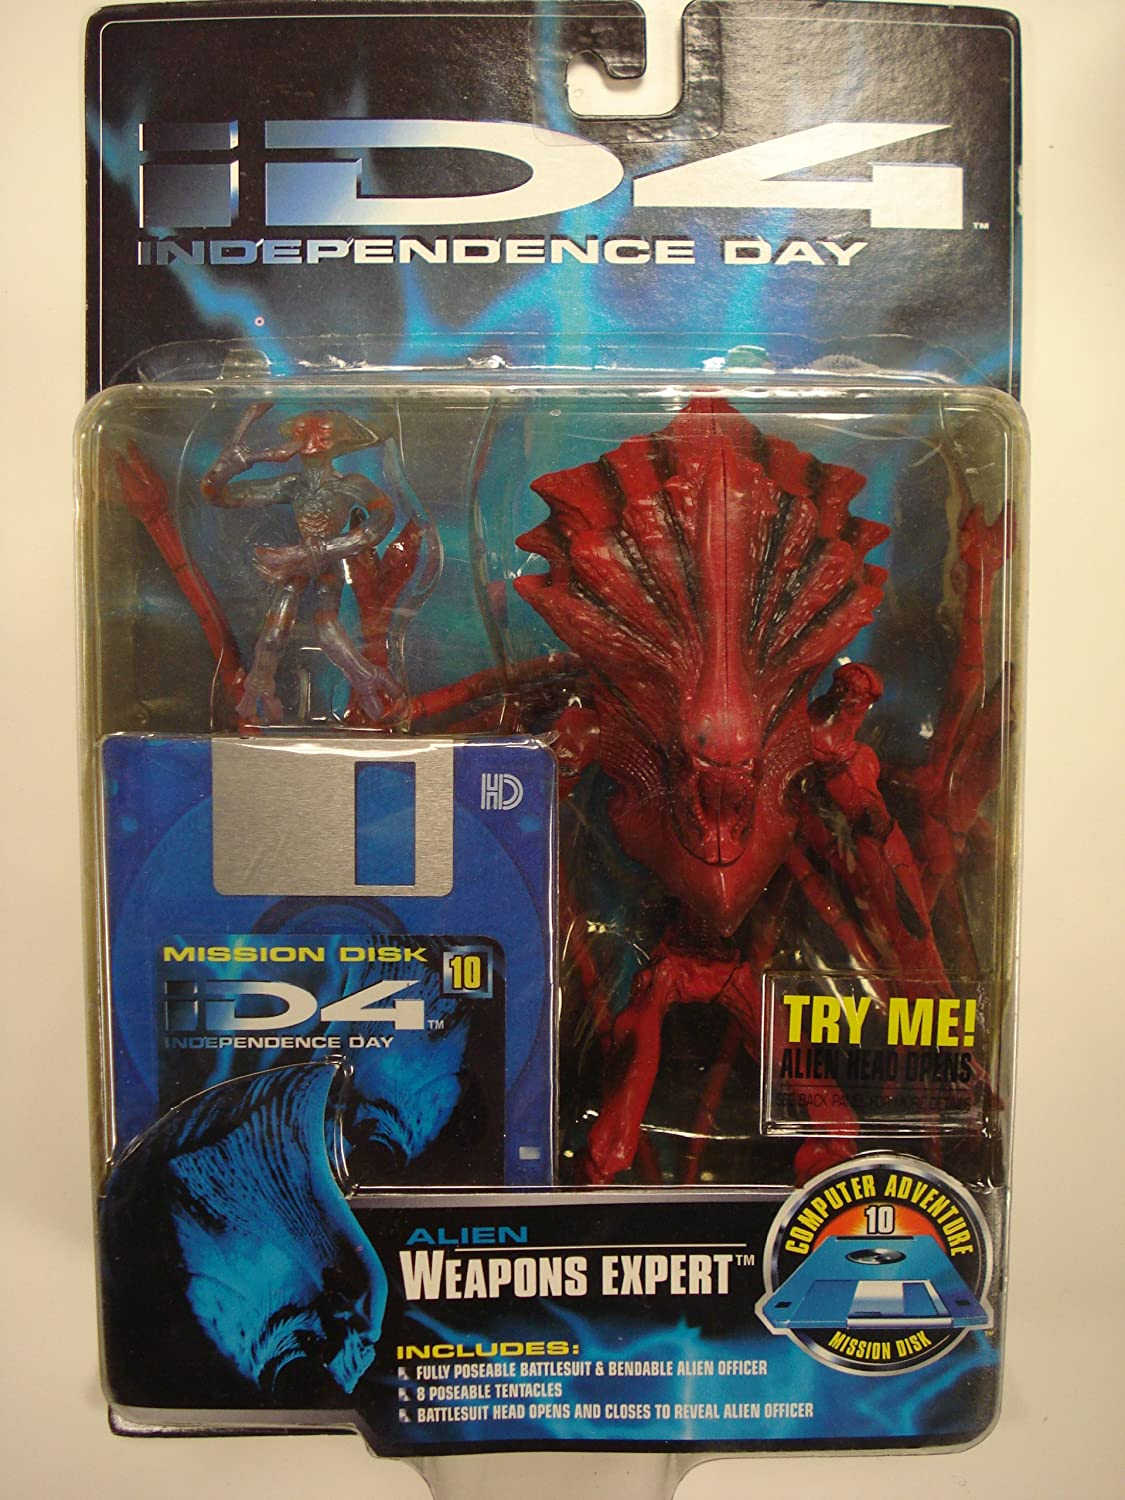 ID4 Independence Day : Alien Weapons Expert 9 Figure Figure Figure Trendmasters bbe093